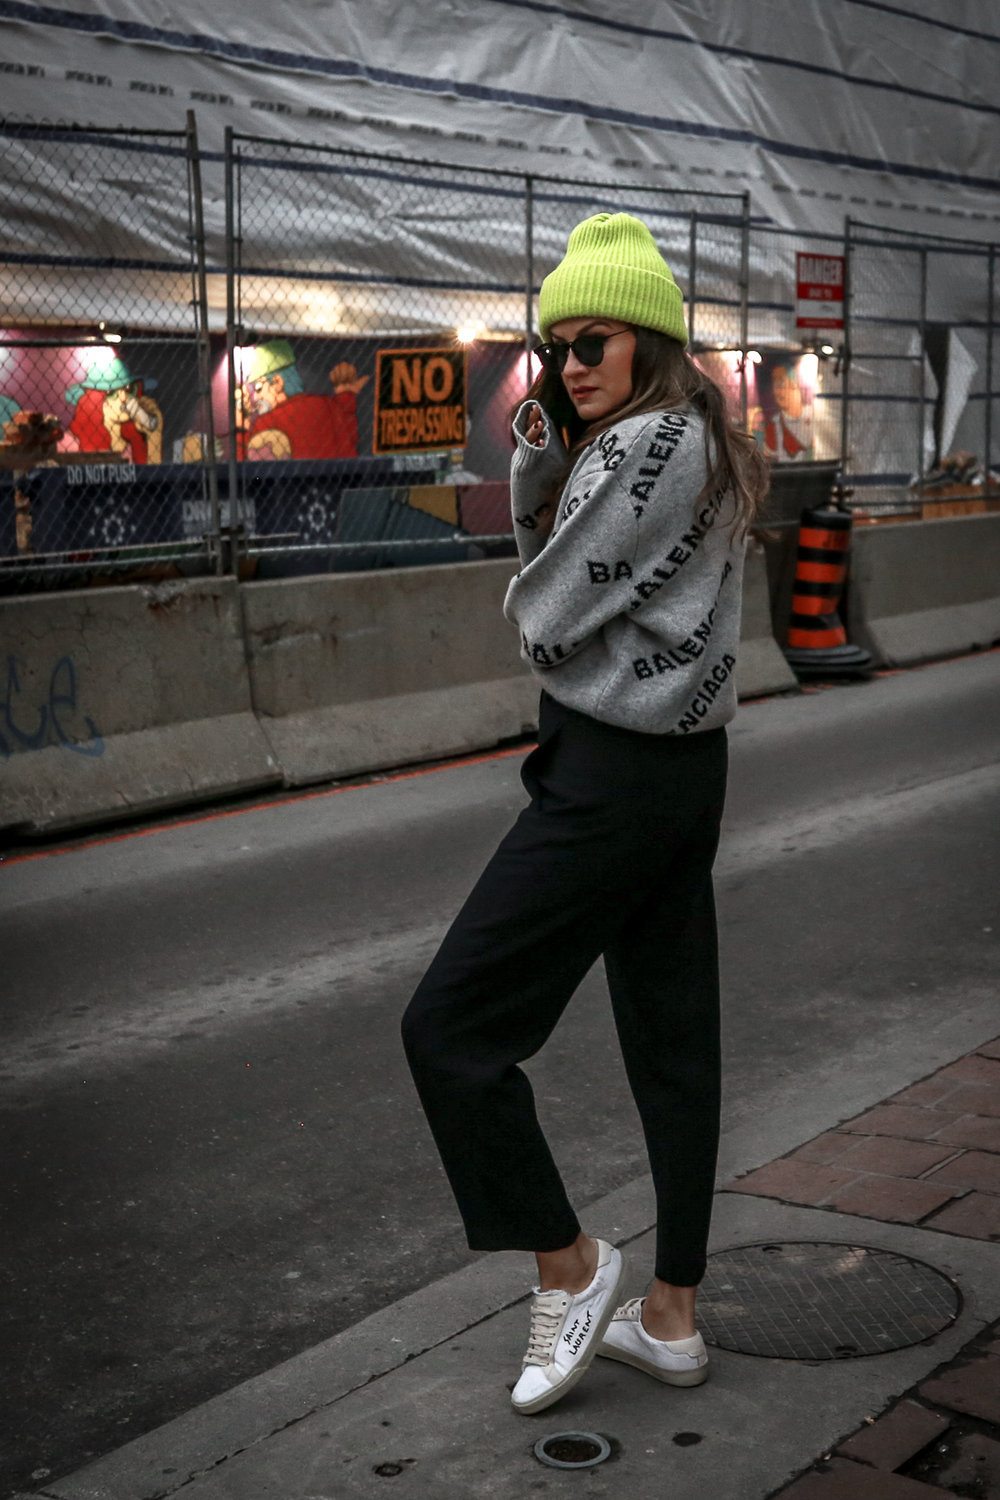 Nathalie Martin wearing Balenciaga cropped logo sweater, Aritzia black Jallade pant, Saint Laurent white canvas court sneakers, Aritzia navy pinstripe Stedman coat, neon green beanie, Bonlook Way sunglasses, street style, woahstyle.com_3918.jpg